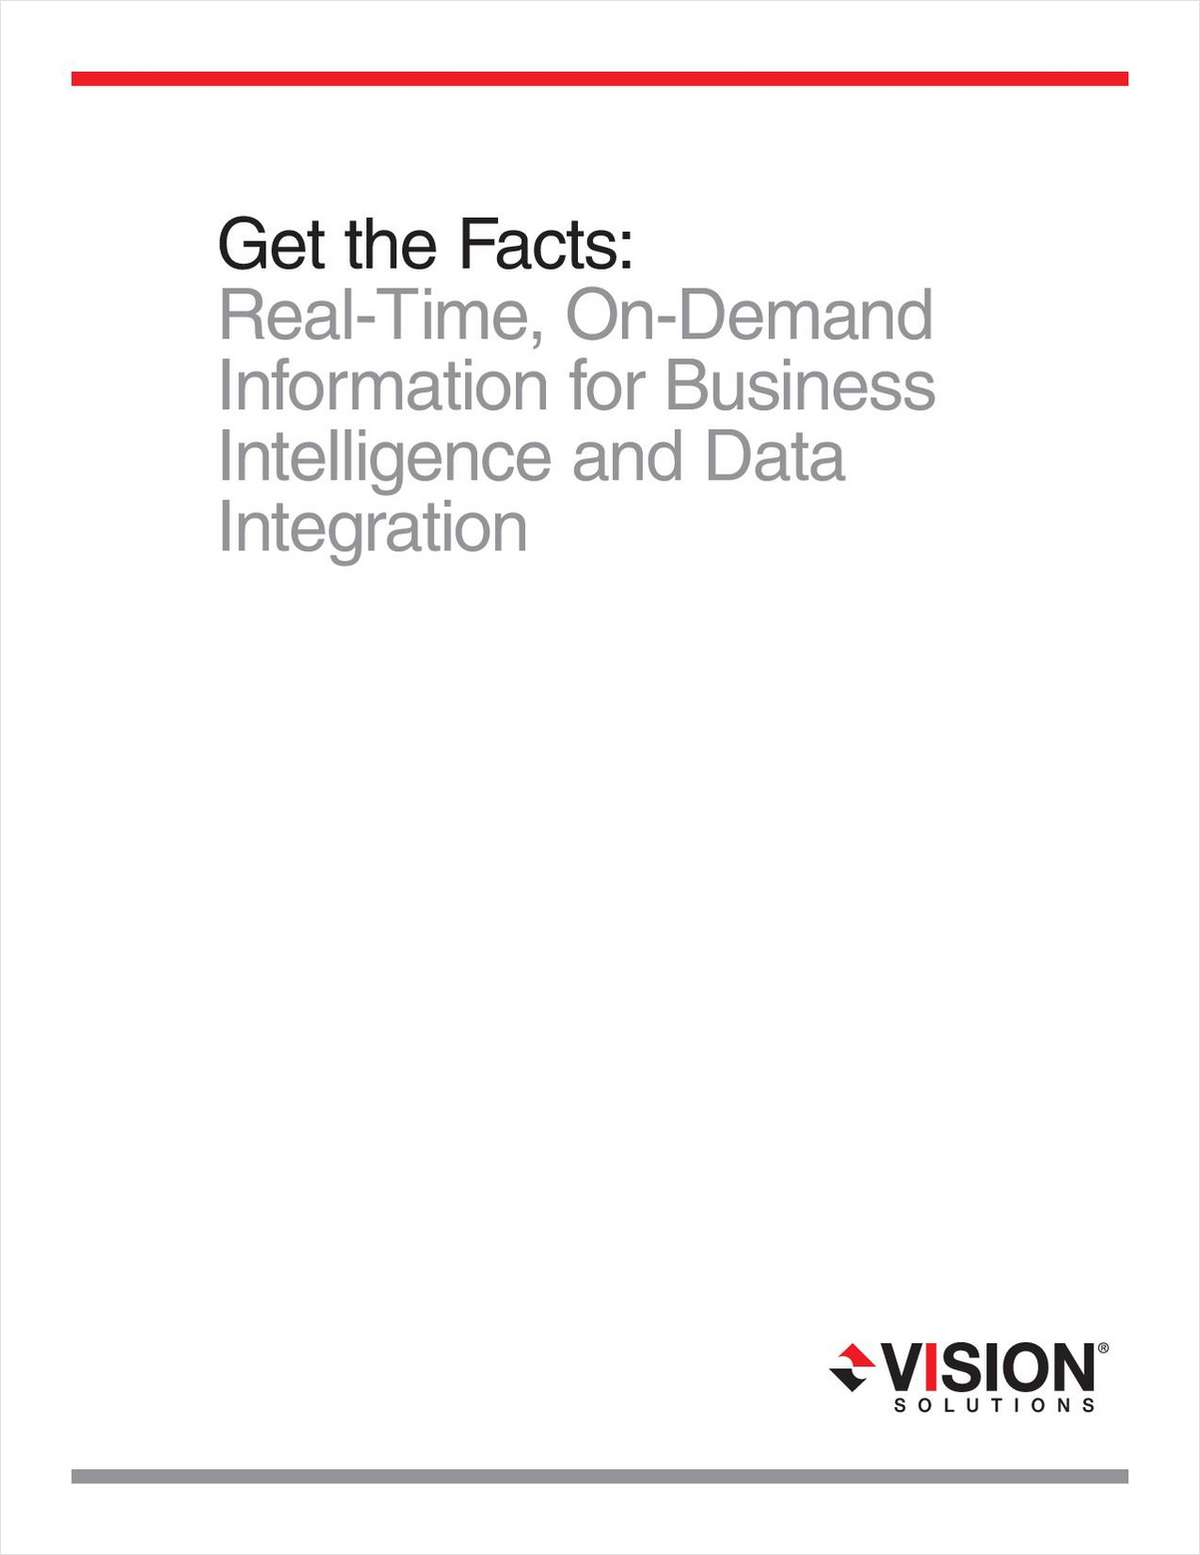 Get the Facts: Real-Time, On-Demand Information for Business Intelligence and Data Integration